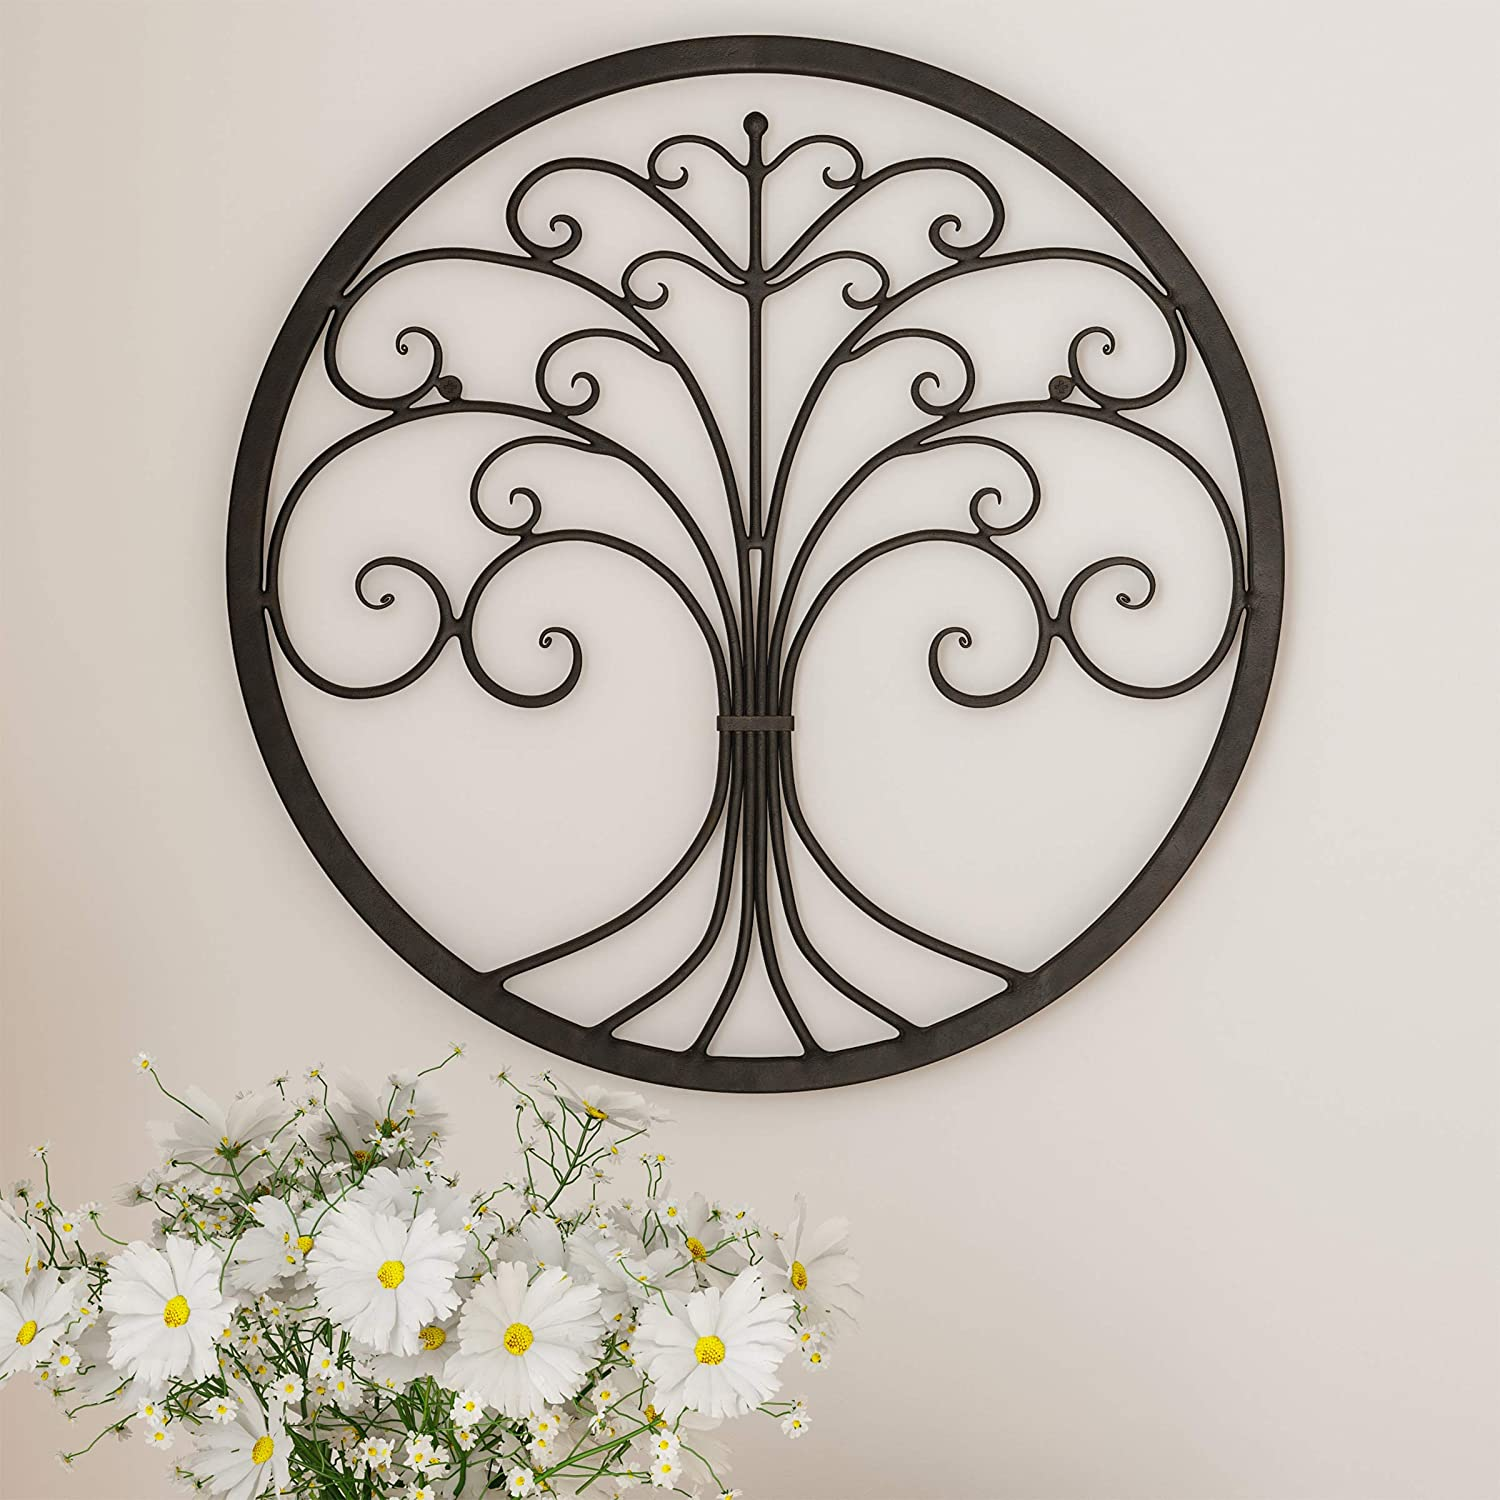 Lavish Home Decor – Iron Metal Tree of Life Modern Wall Sculpture Art Round for Living Room, Bedroom or Kitchen (Brown)